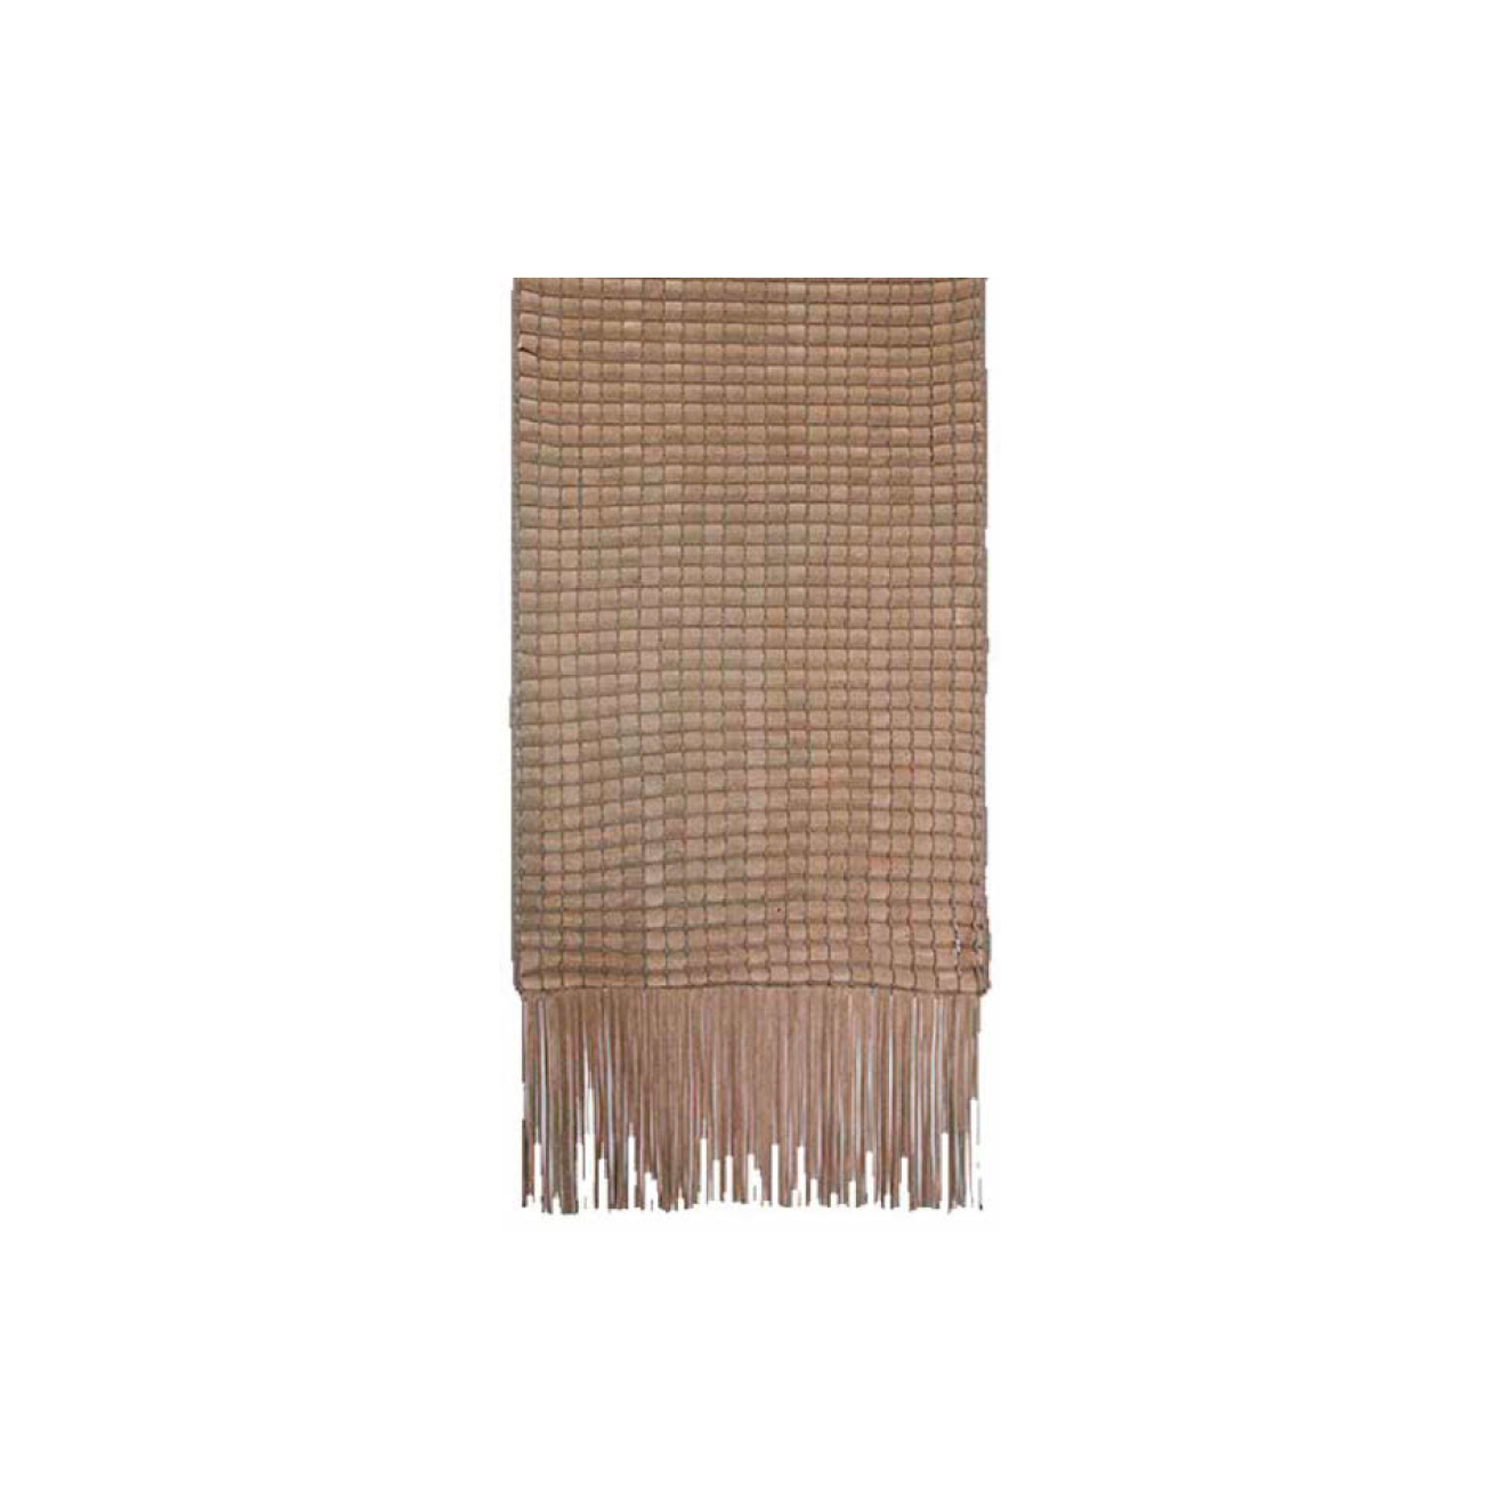 Cordao Fringe Woven Leather Throw - The Cordao Fringe Woven Leather Throw is designed to complement an ambient setting with natural and sophisticated feeling. Elisa Atheniense woven leather pieces, are handmade and manufactured in Brazil using an exclusive treated leather that brings the soft feel touch to every single piece.  Bespoke sizes and colours are also available upon request, see colour chart for reference. | Matter of Stuff